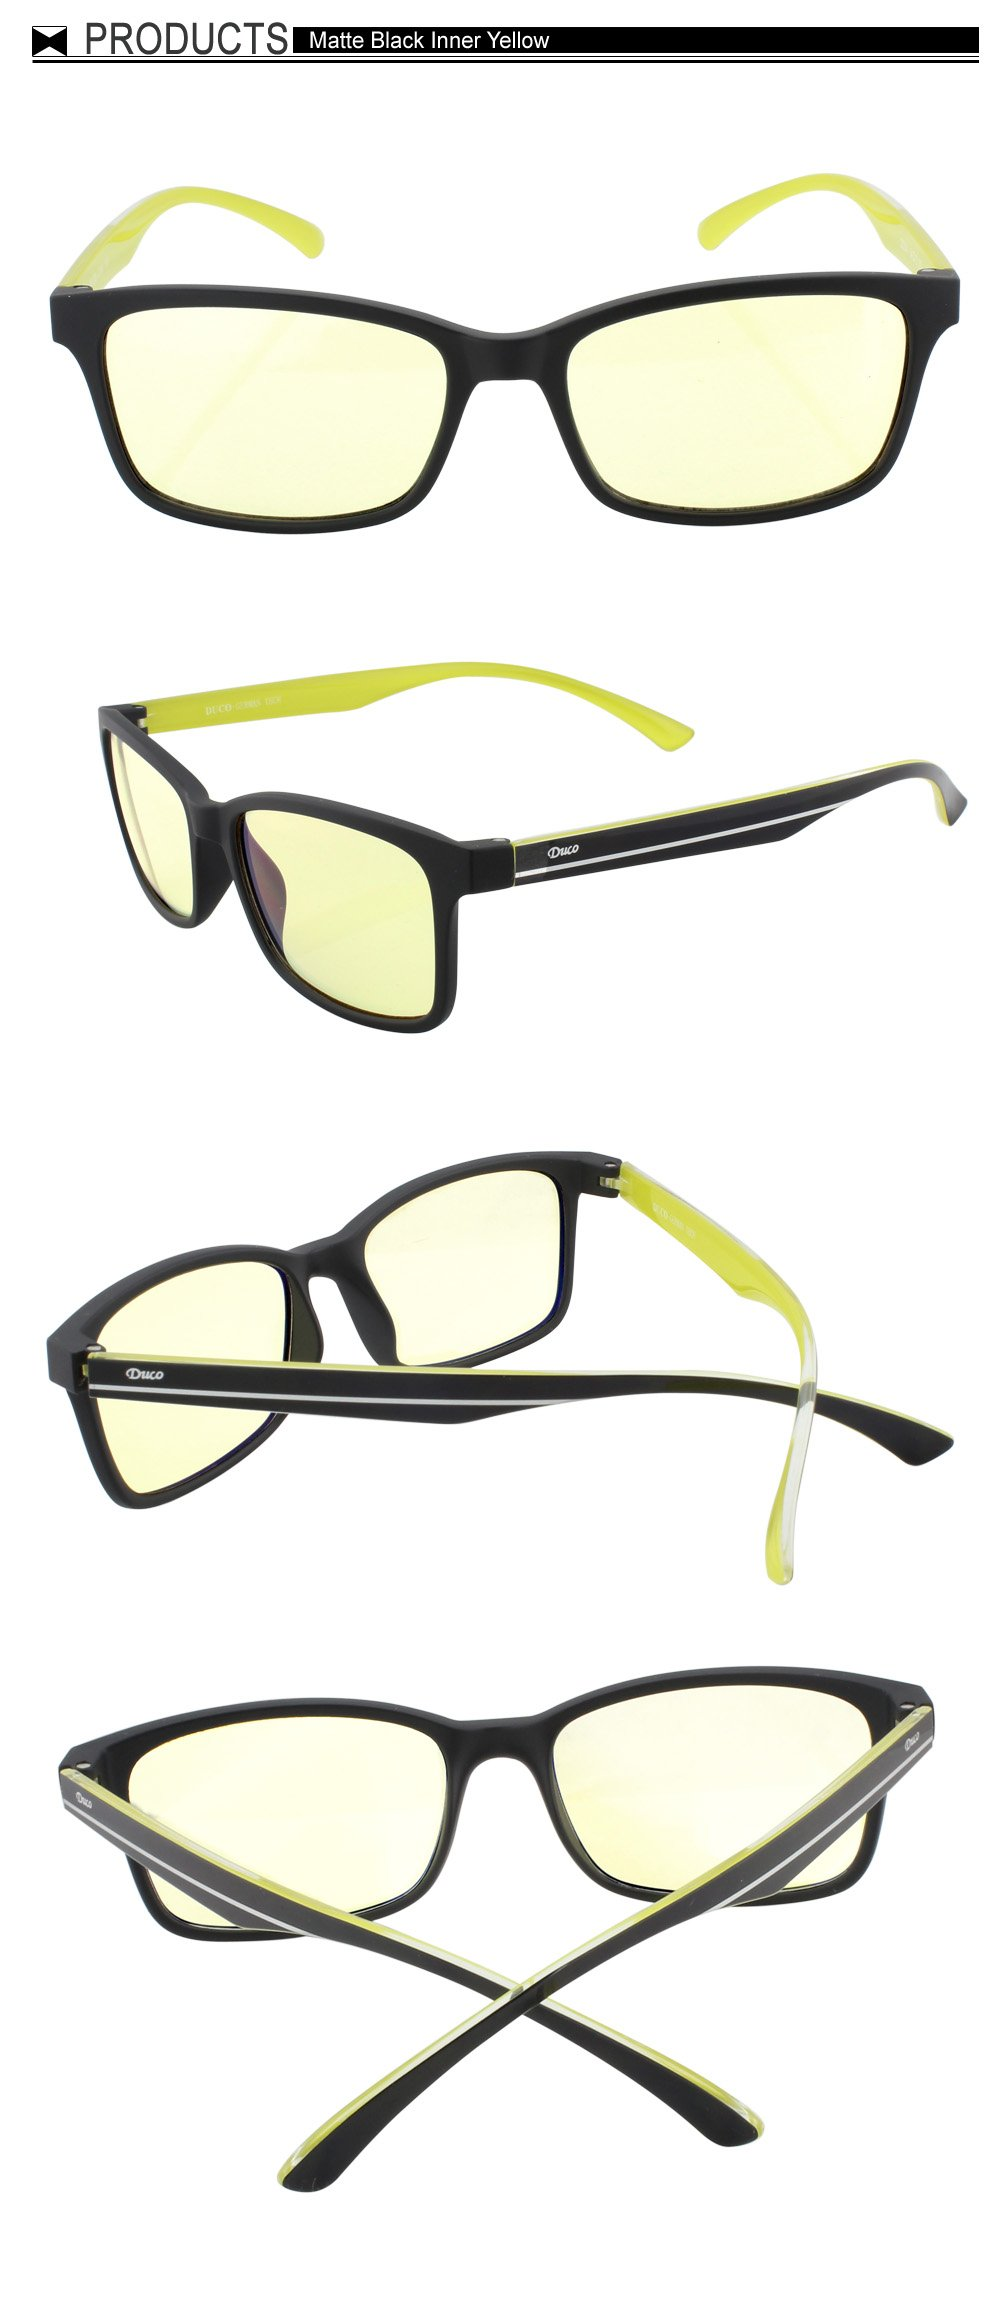 DUCO New Design Video Computer Gaming Glasses with Amber Tint Lens TR90 Yellow Arms 224 by DUCO (Image #3)